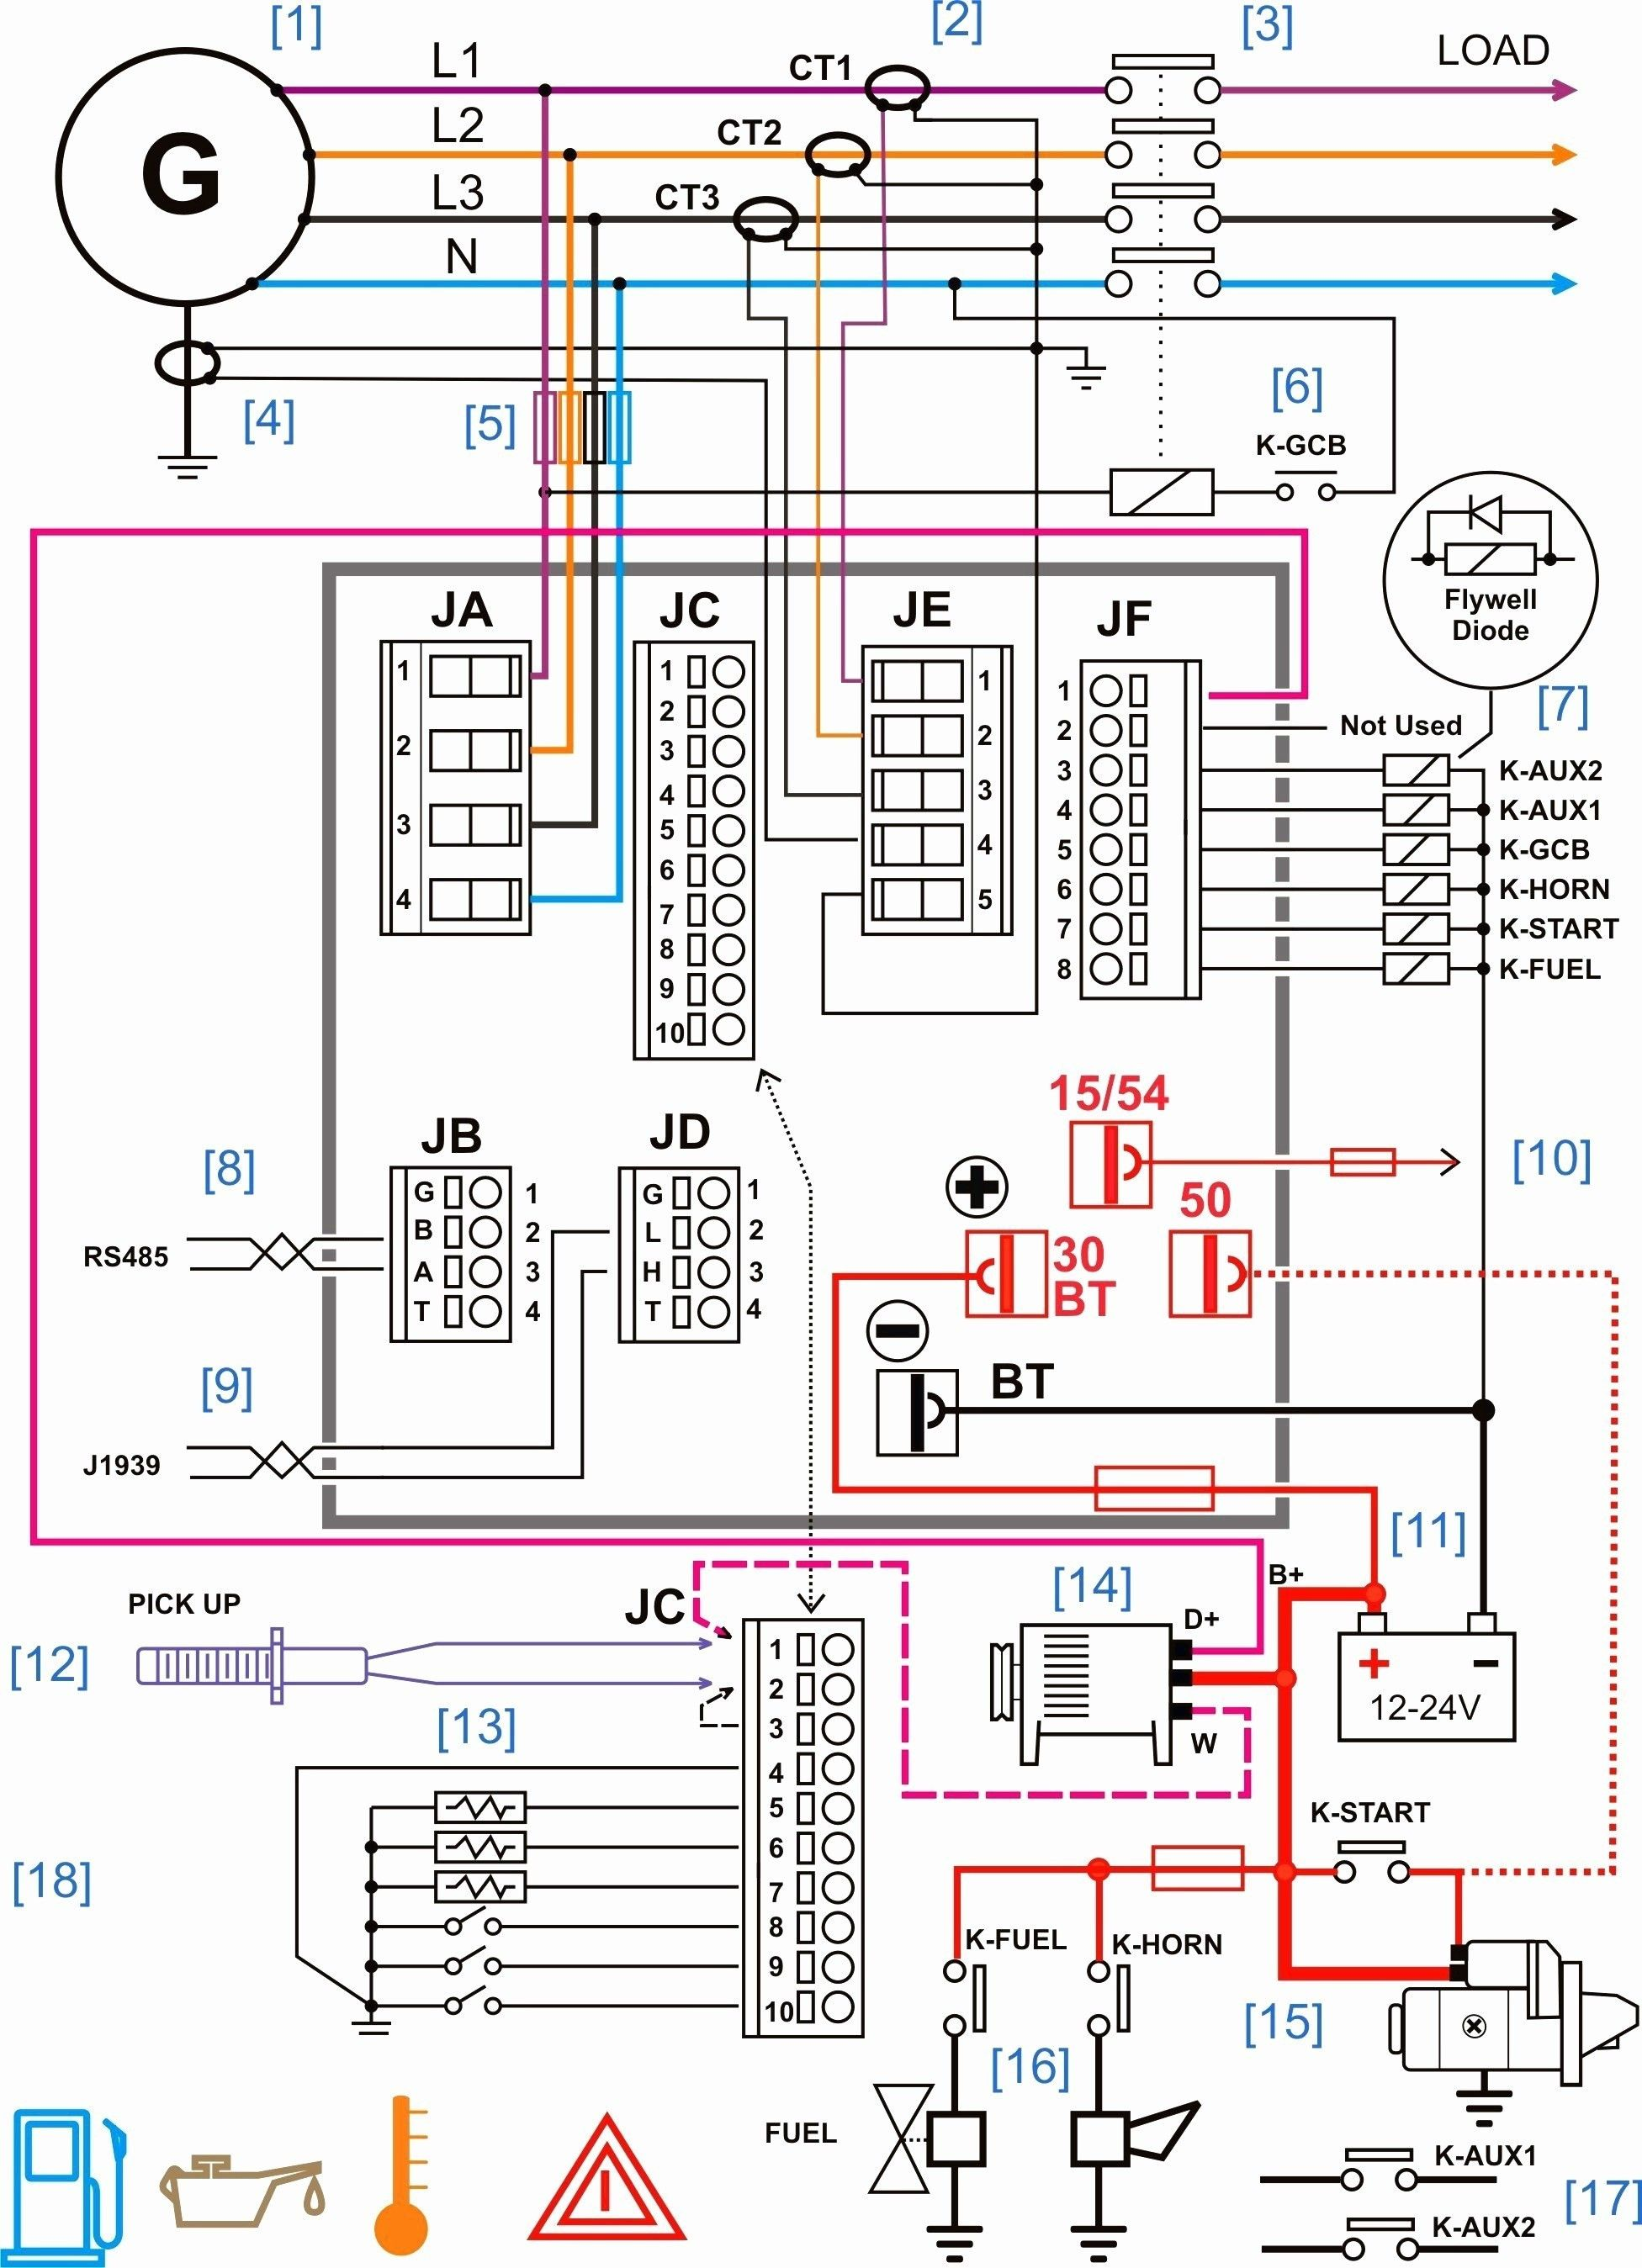 Car Wiring Diagram Awesome In 2020 Electrical Circuit Diagram Electrical Panel Wiring Electrical Diagram